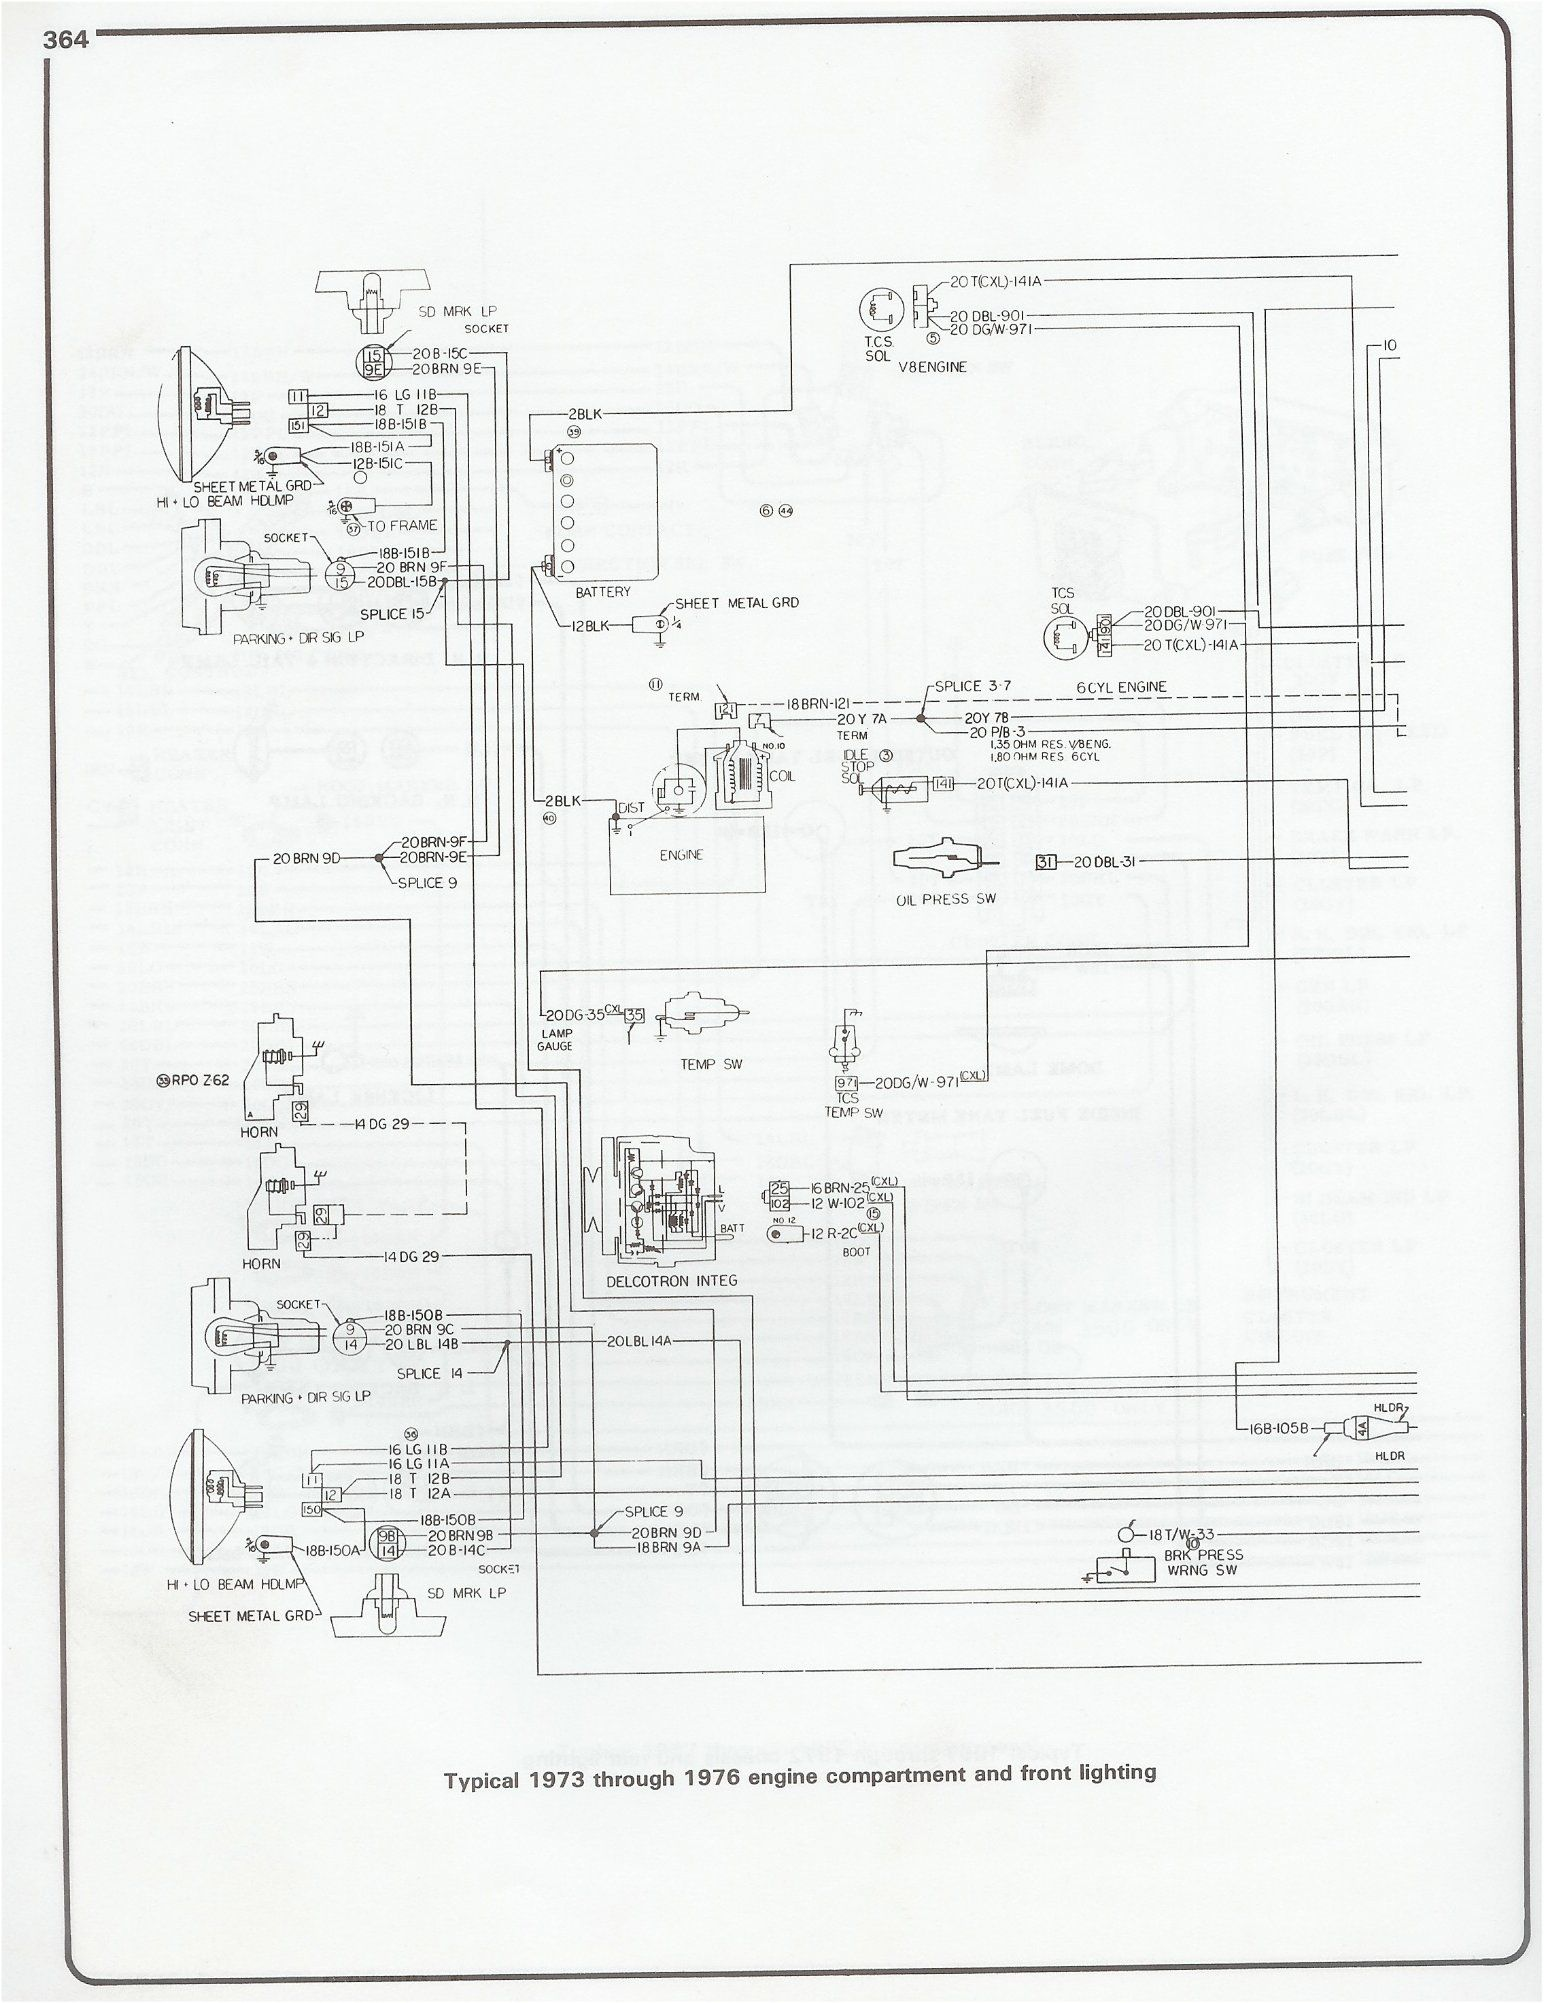 [FO_9472] Chevy 350 Engine Diagram 1983 Chevy I Need A